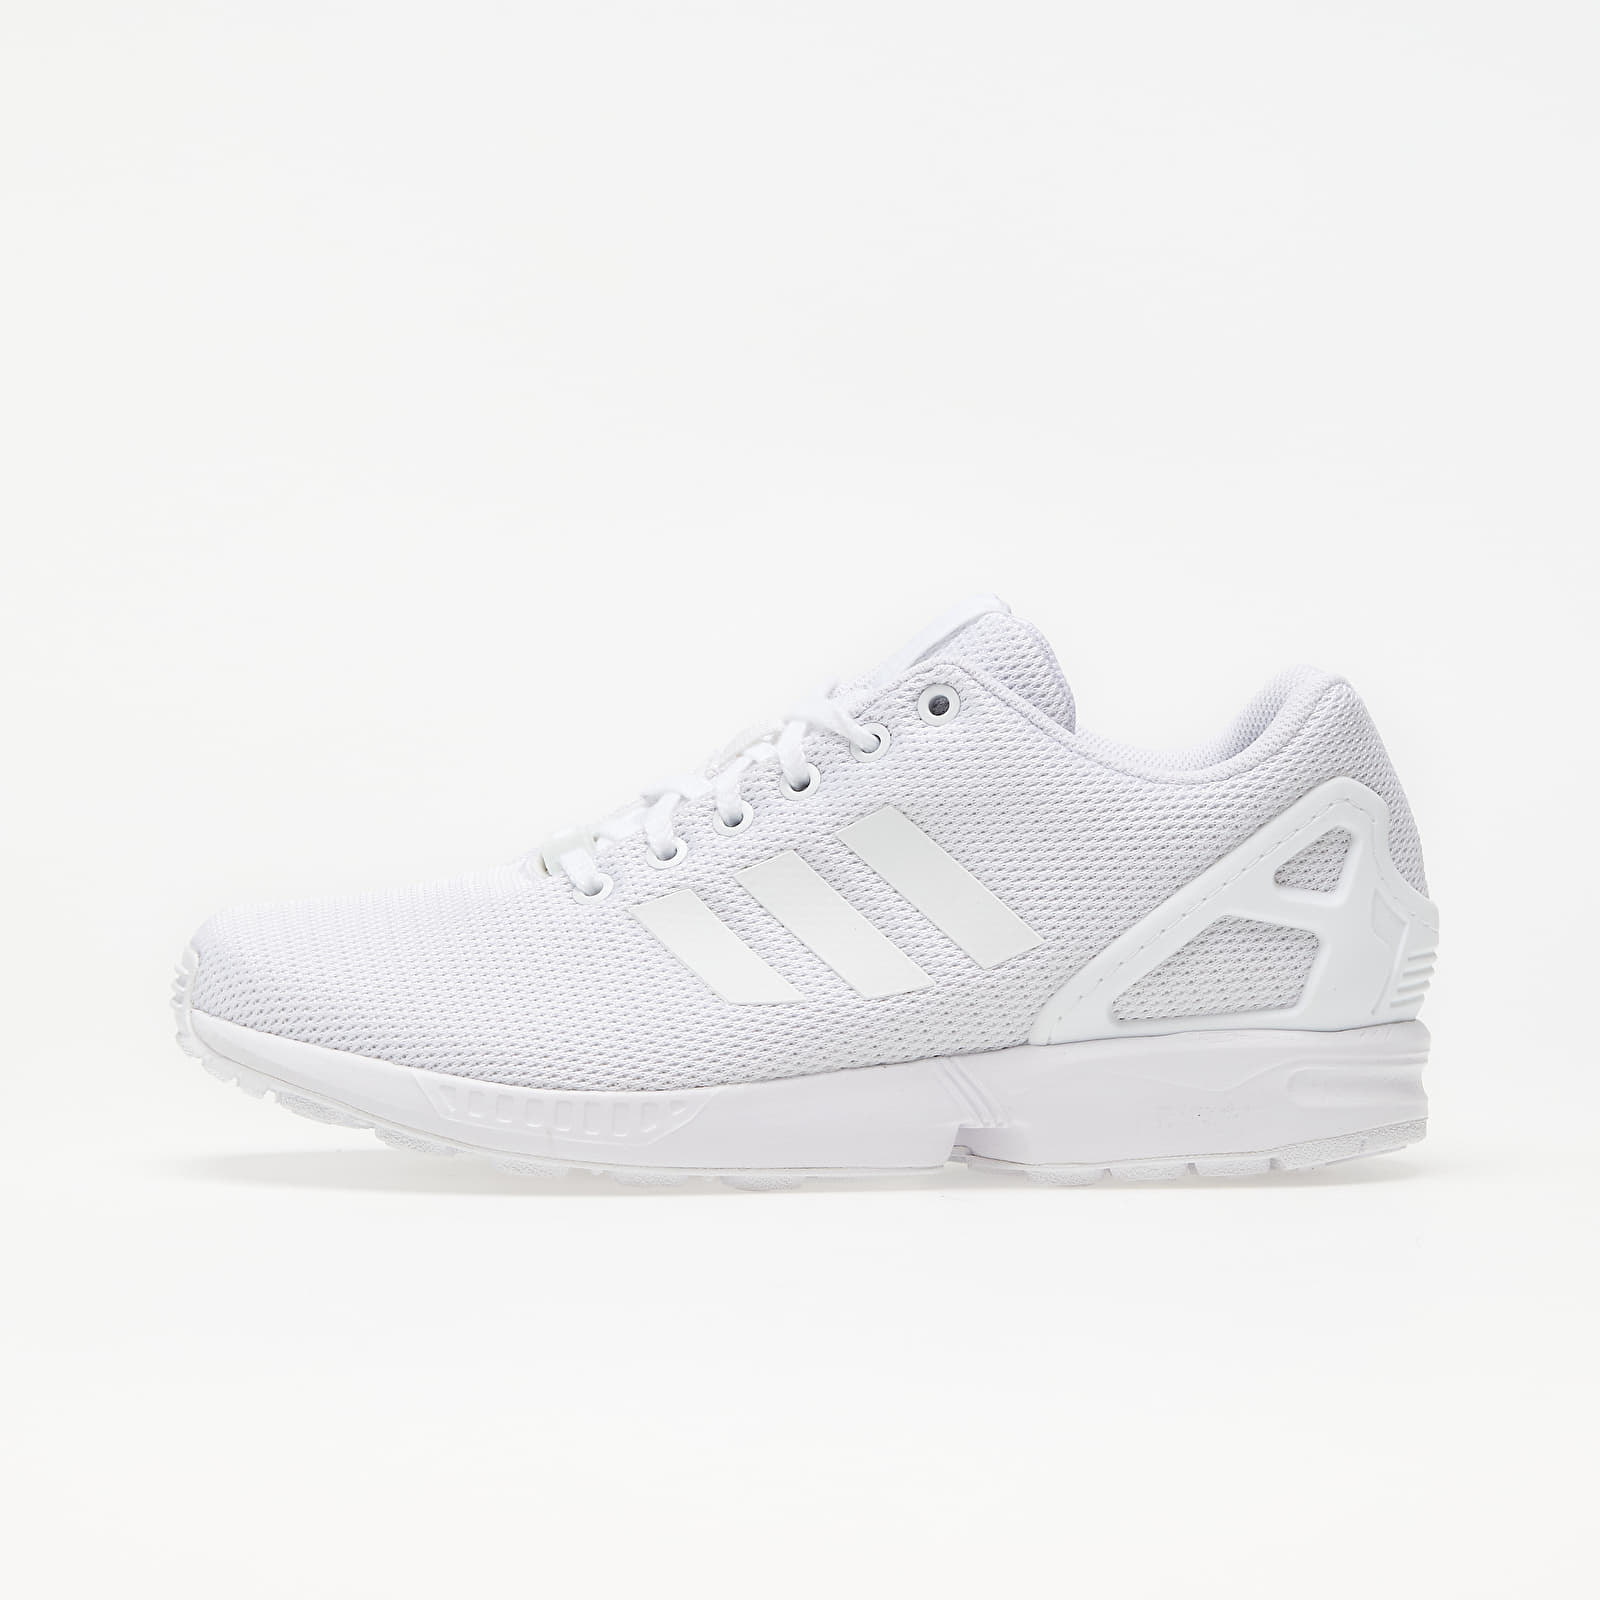 Men's shoes adidas ZX Flux Ftw White/ Ftw White/ Cool Grey